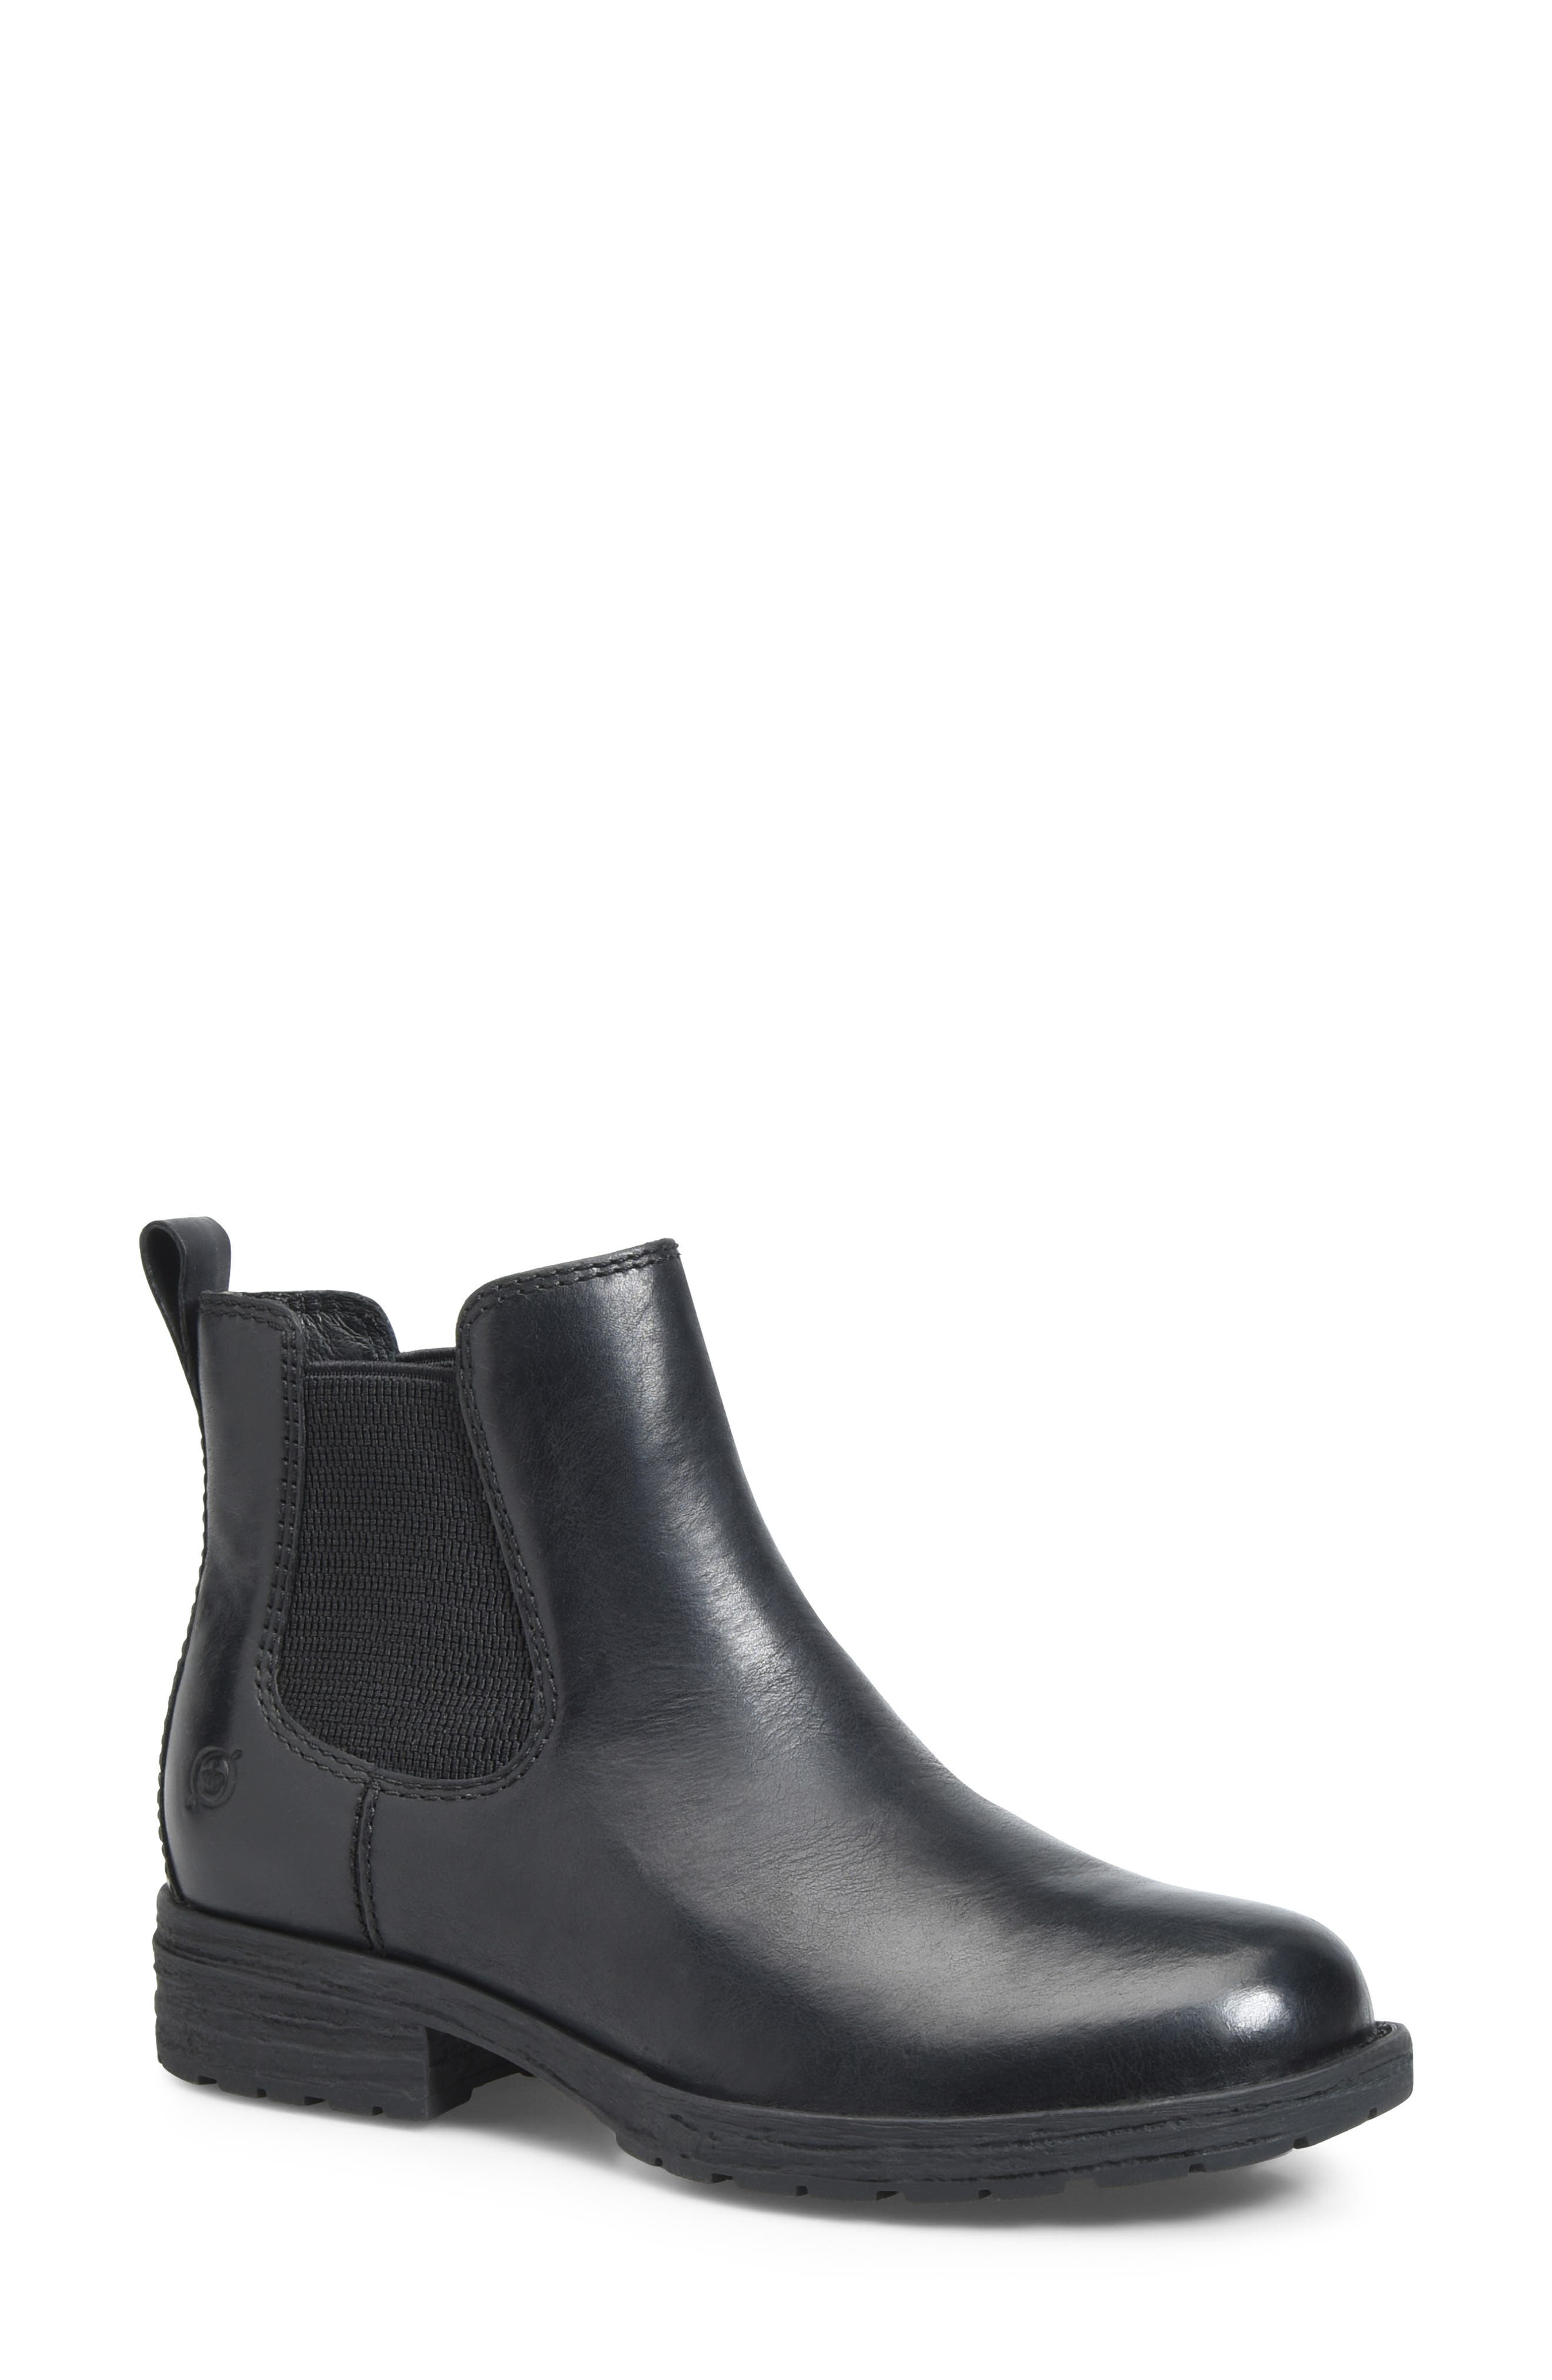 BØRN Cove Waterproof Chelsea Boot, Main, color, BLACK DISTRESSED LEATHER